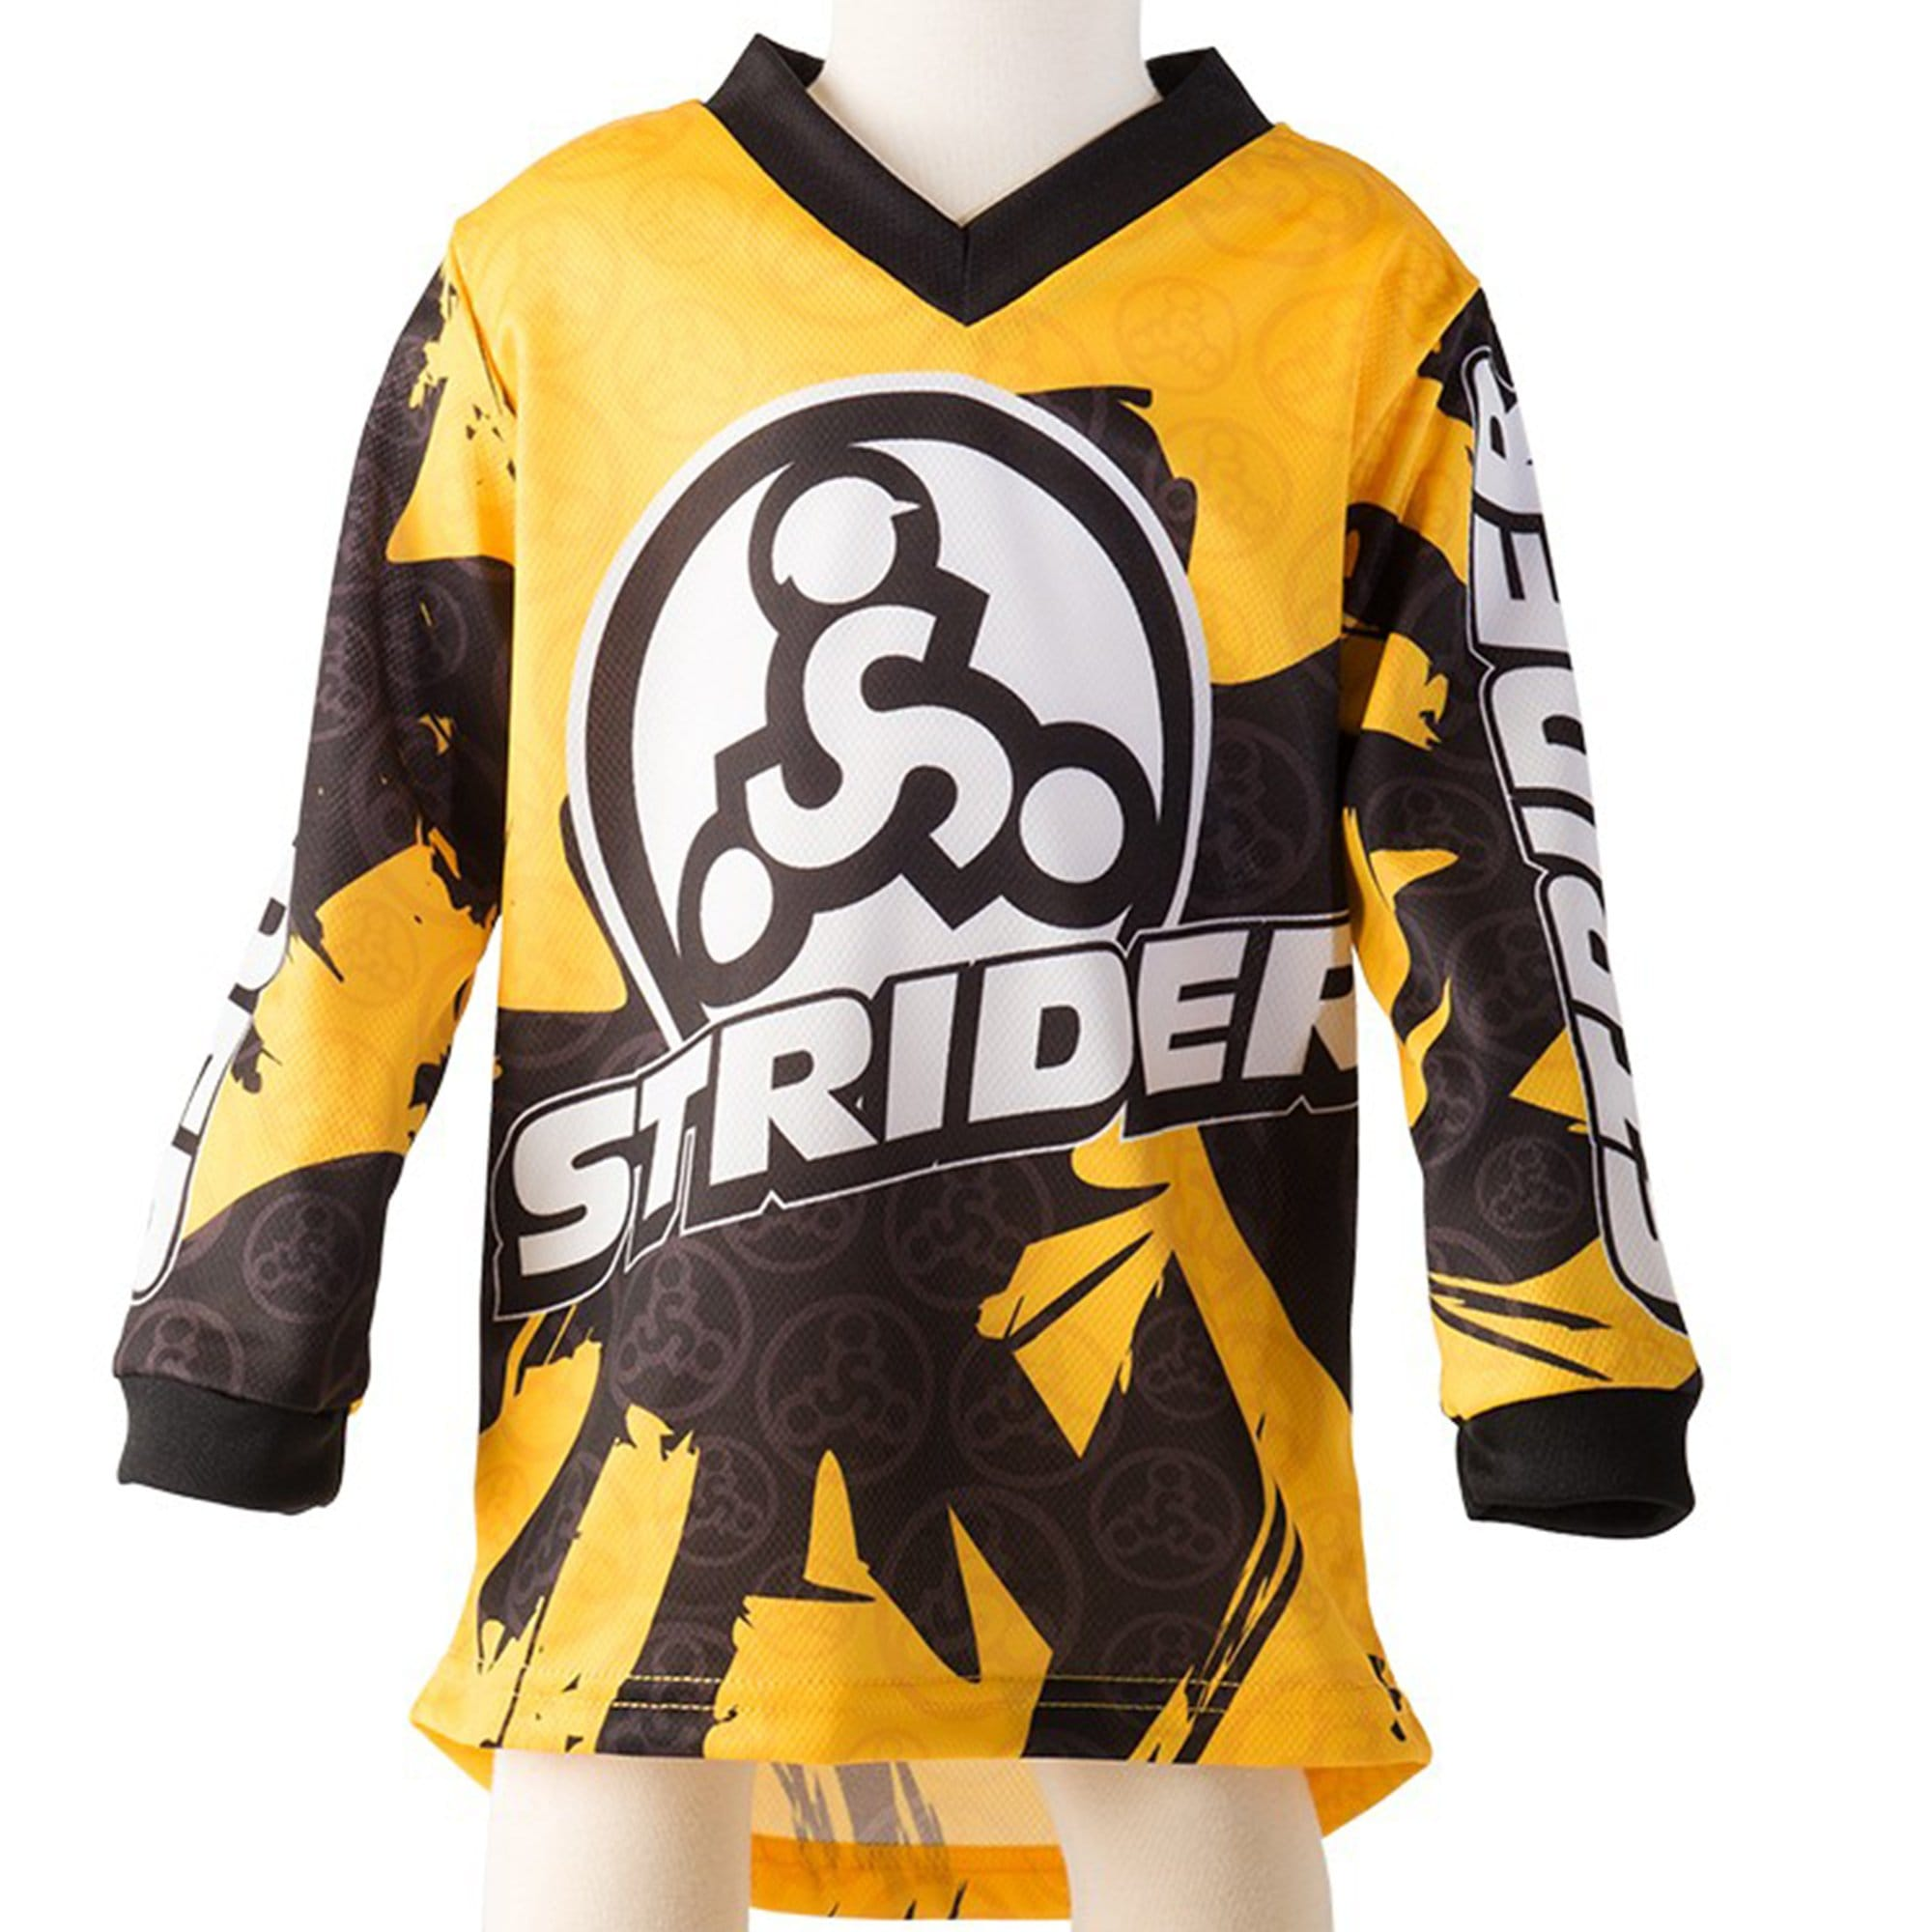 Strider Racing Jersey - Yellow